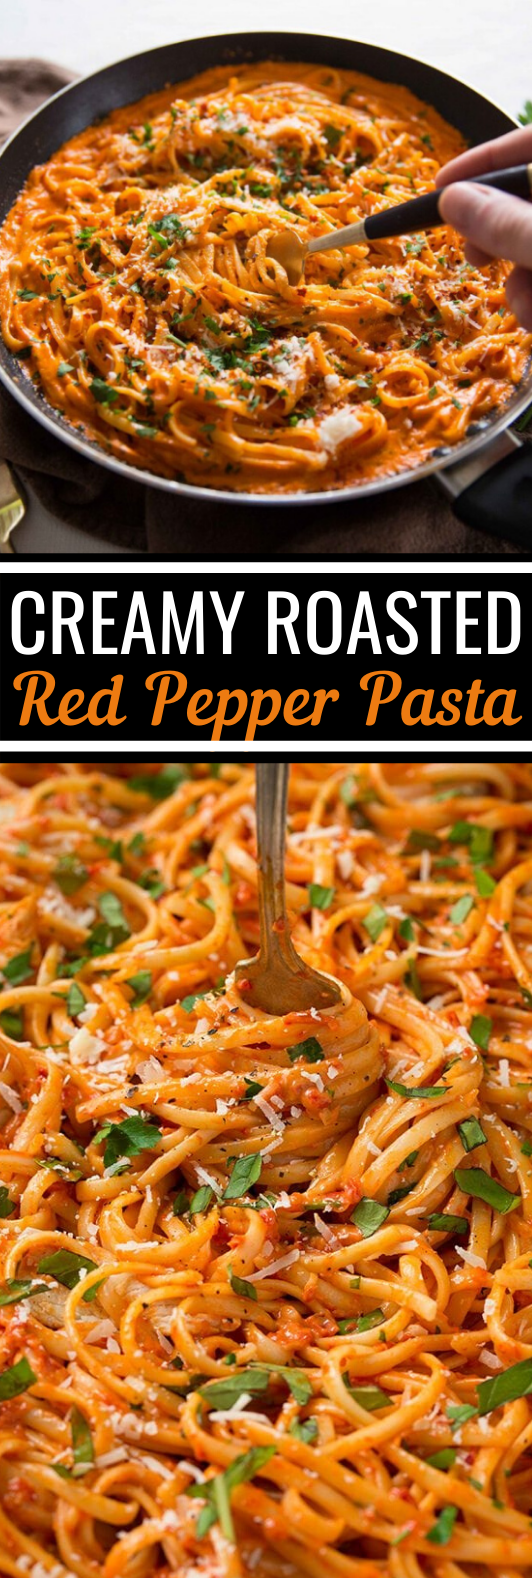 Creamy Roasted Red Pepper Pasta #easy #dinner #pasta #quick #vegetarian